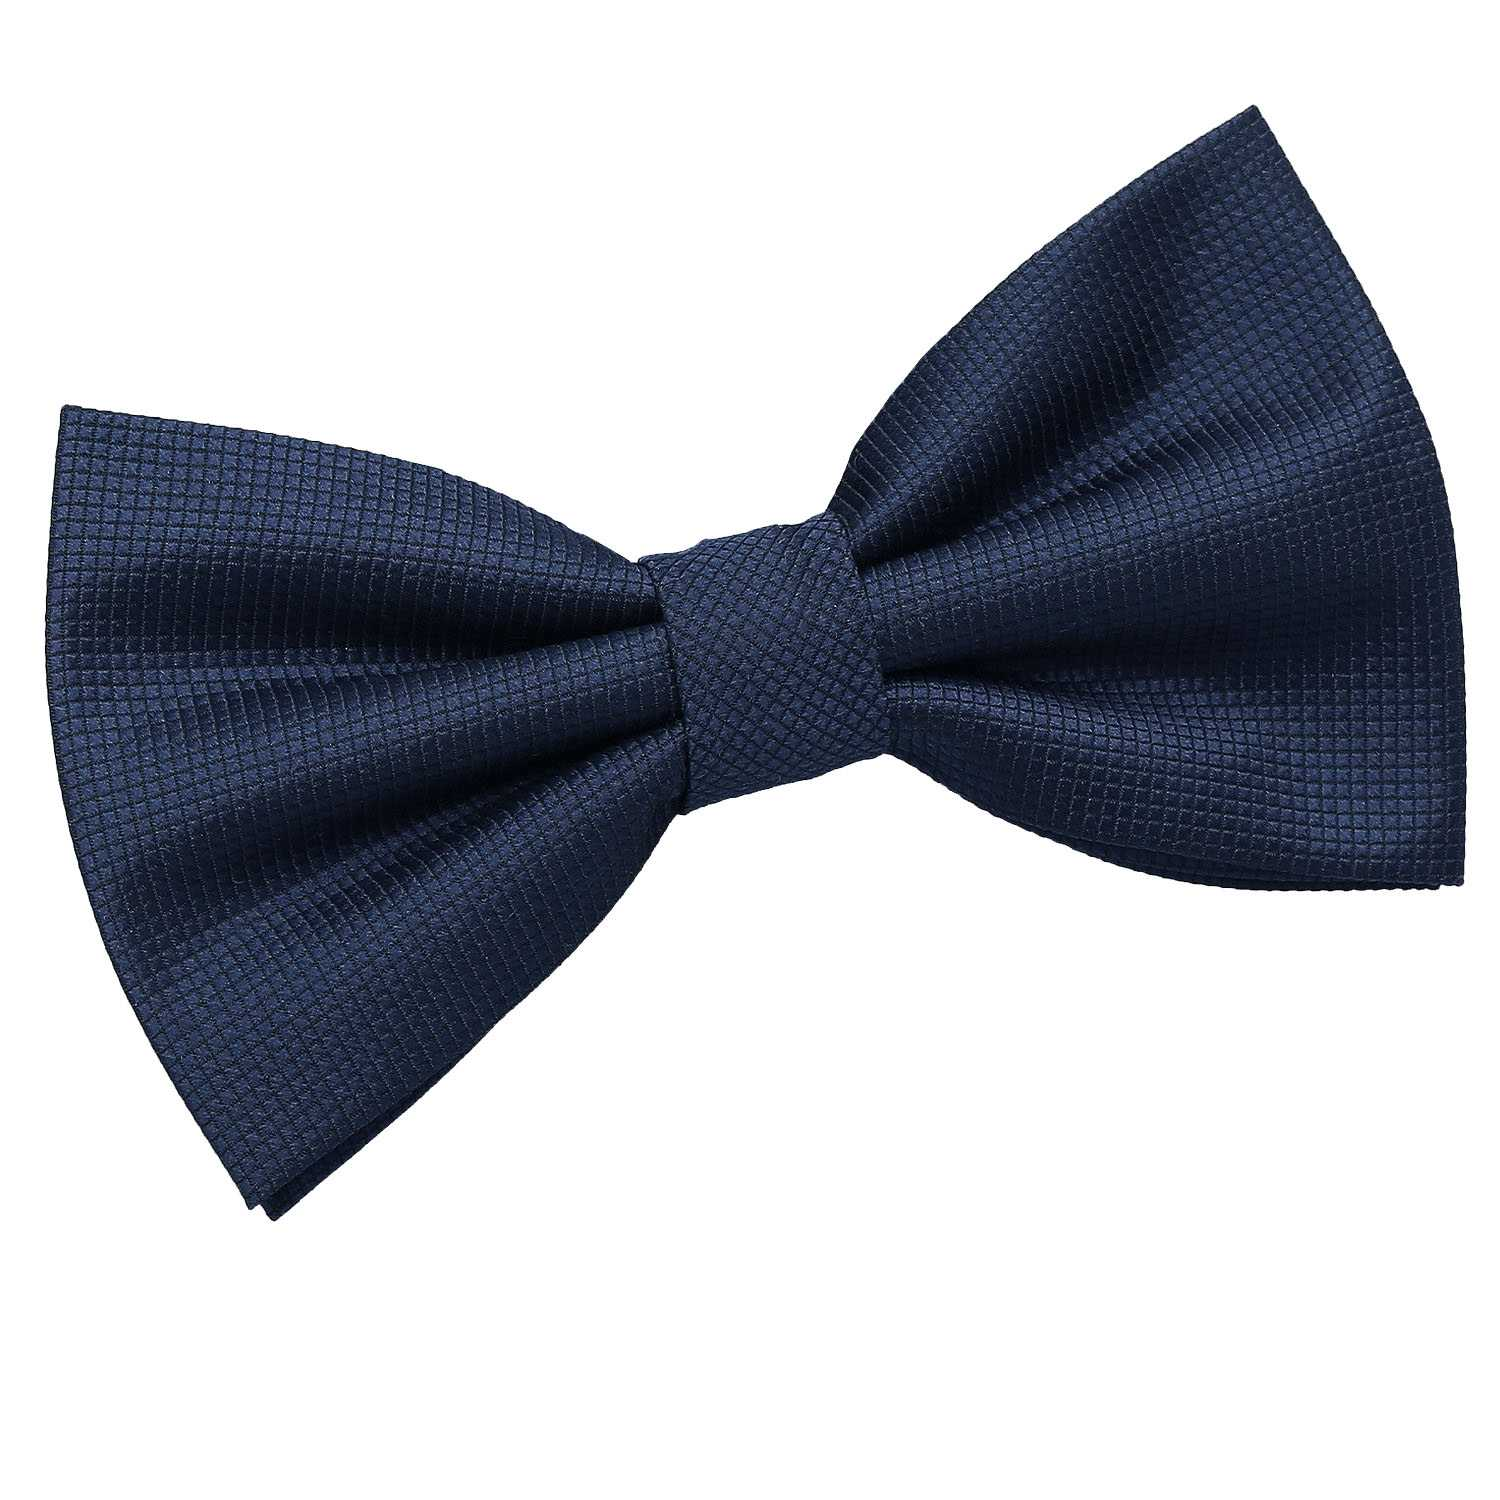 R. Hanauer Bow Ties have been part of a gentleman's wardrobe for over thirty years. Cut on a bias for ideal stretch, our unique bow ties easily make a relaxed, classic .